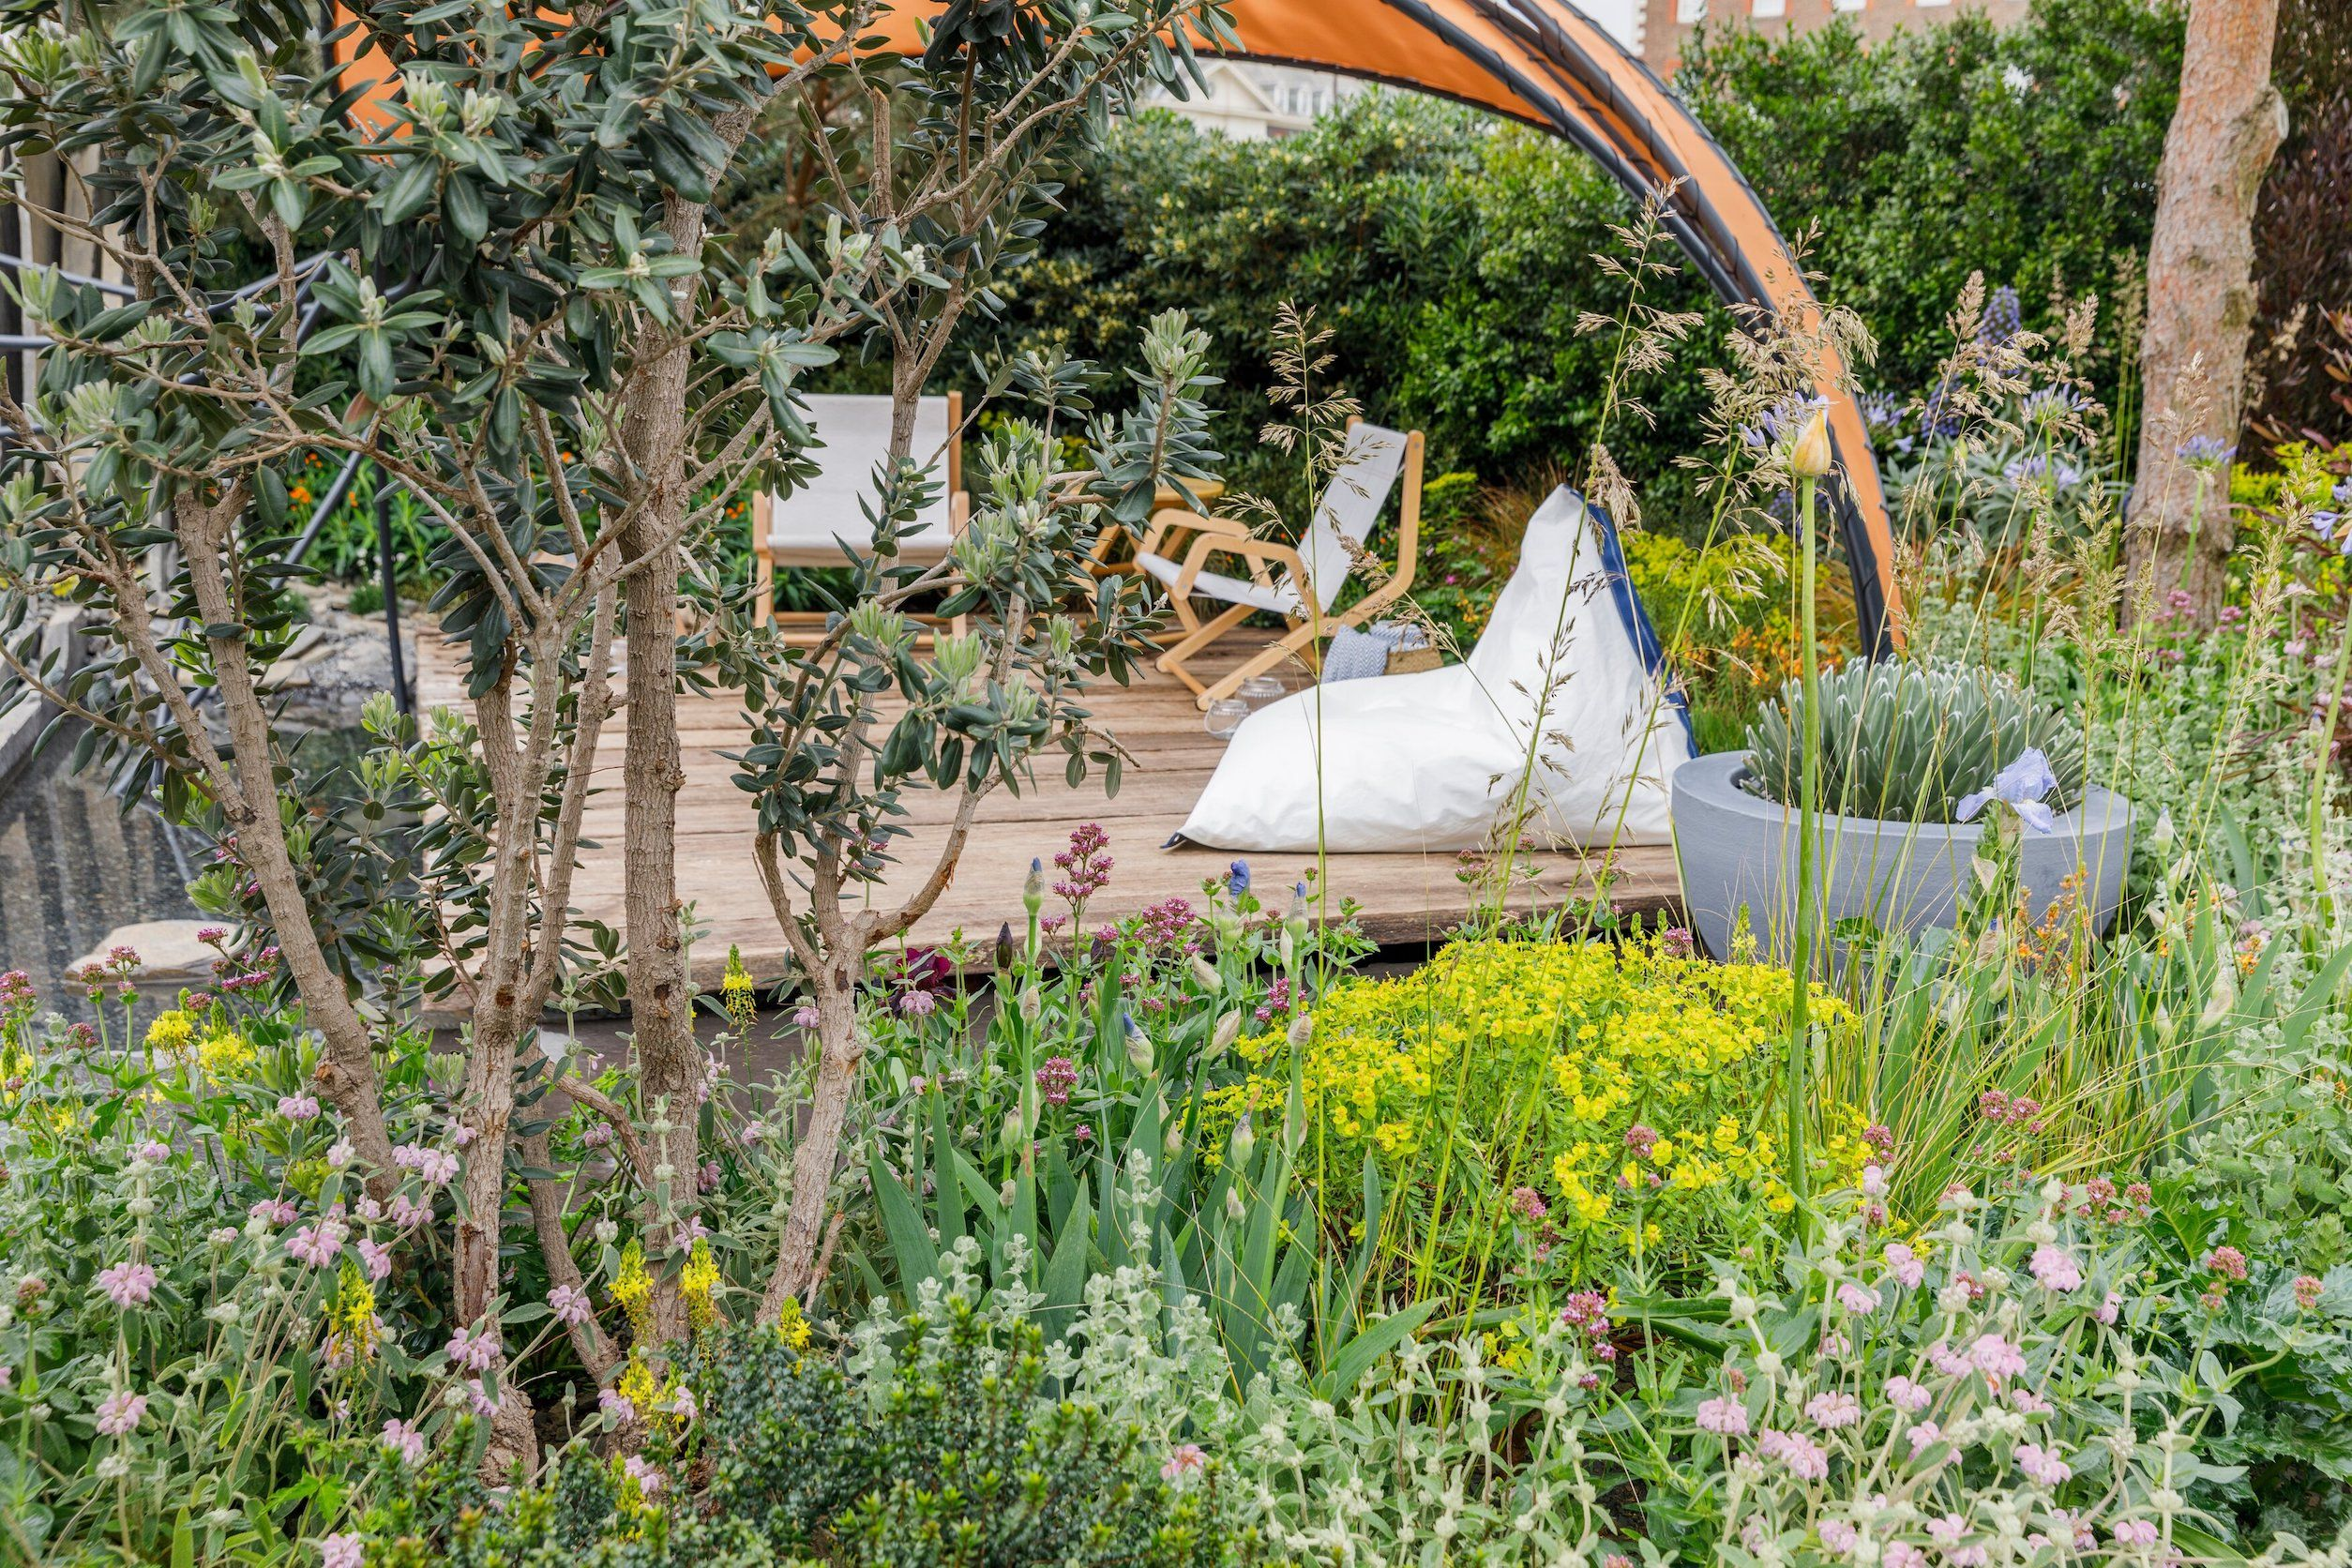 5 design tips to help you recreate the magic of Chelsea in your own garden